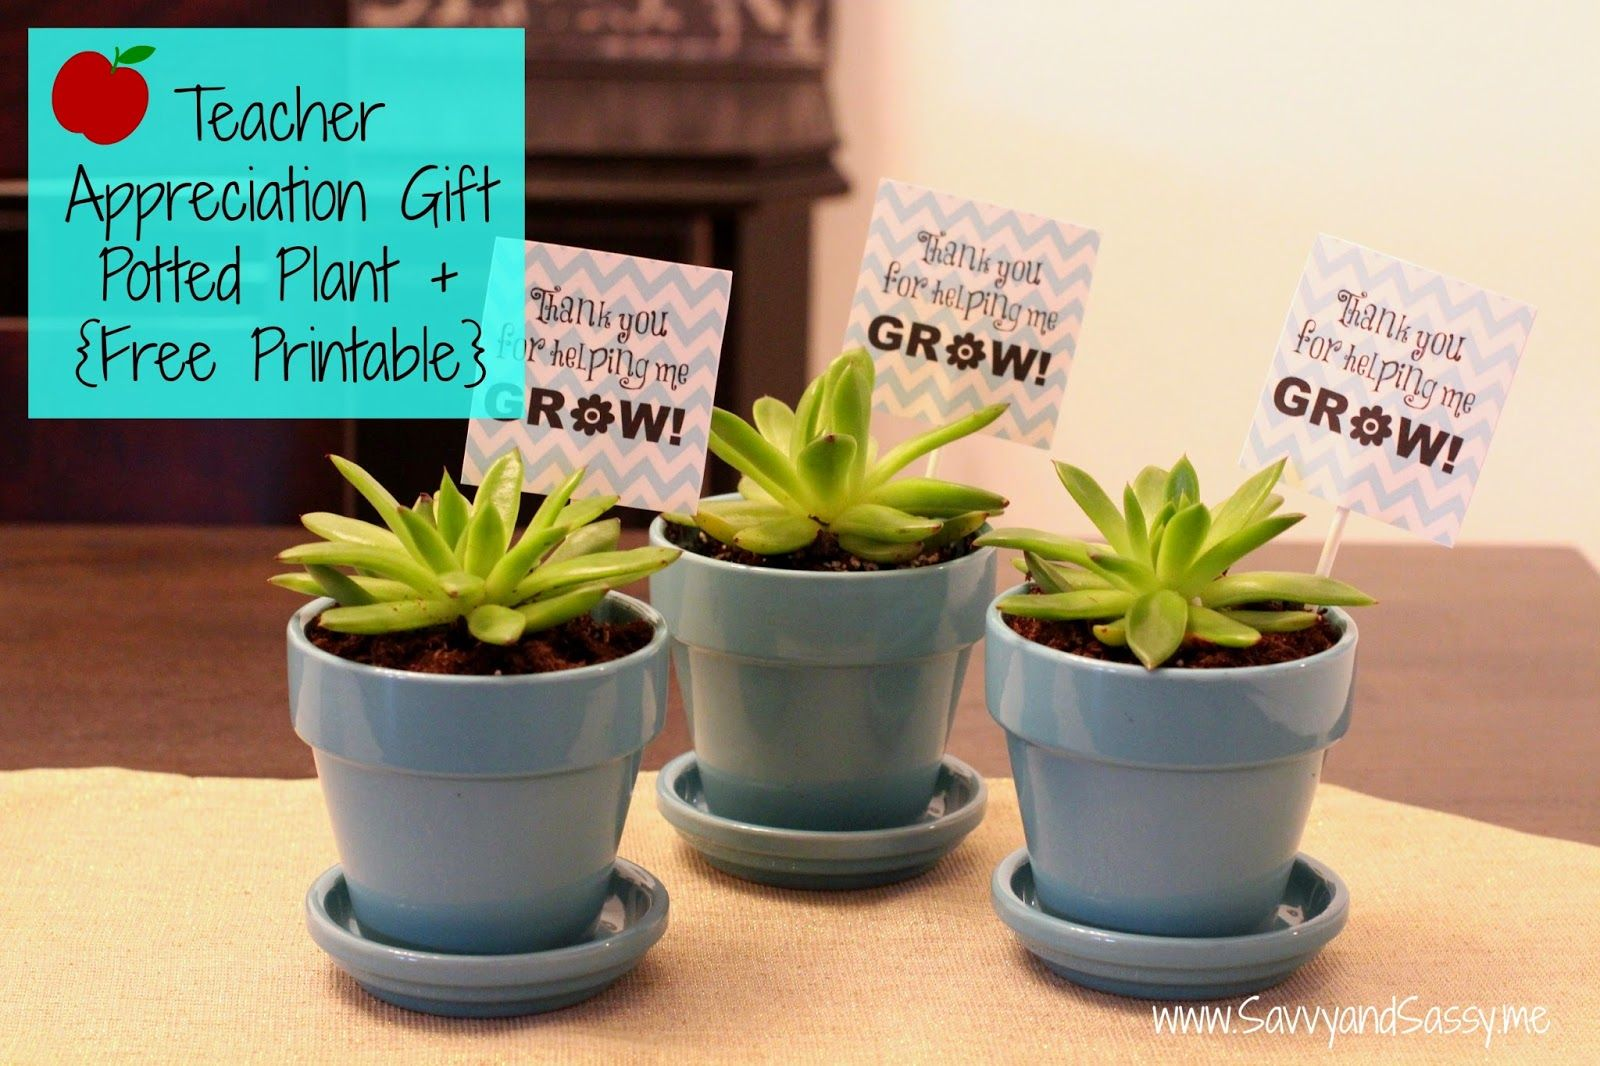 Thank You For Helping Me Grow Teacher Appreciation Gift